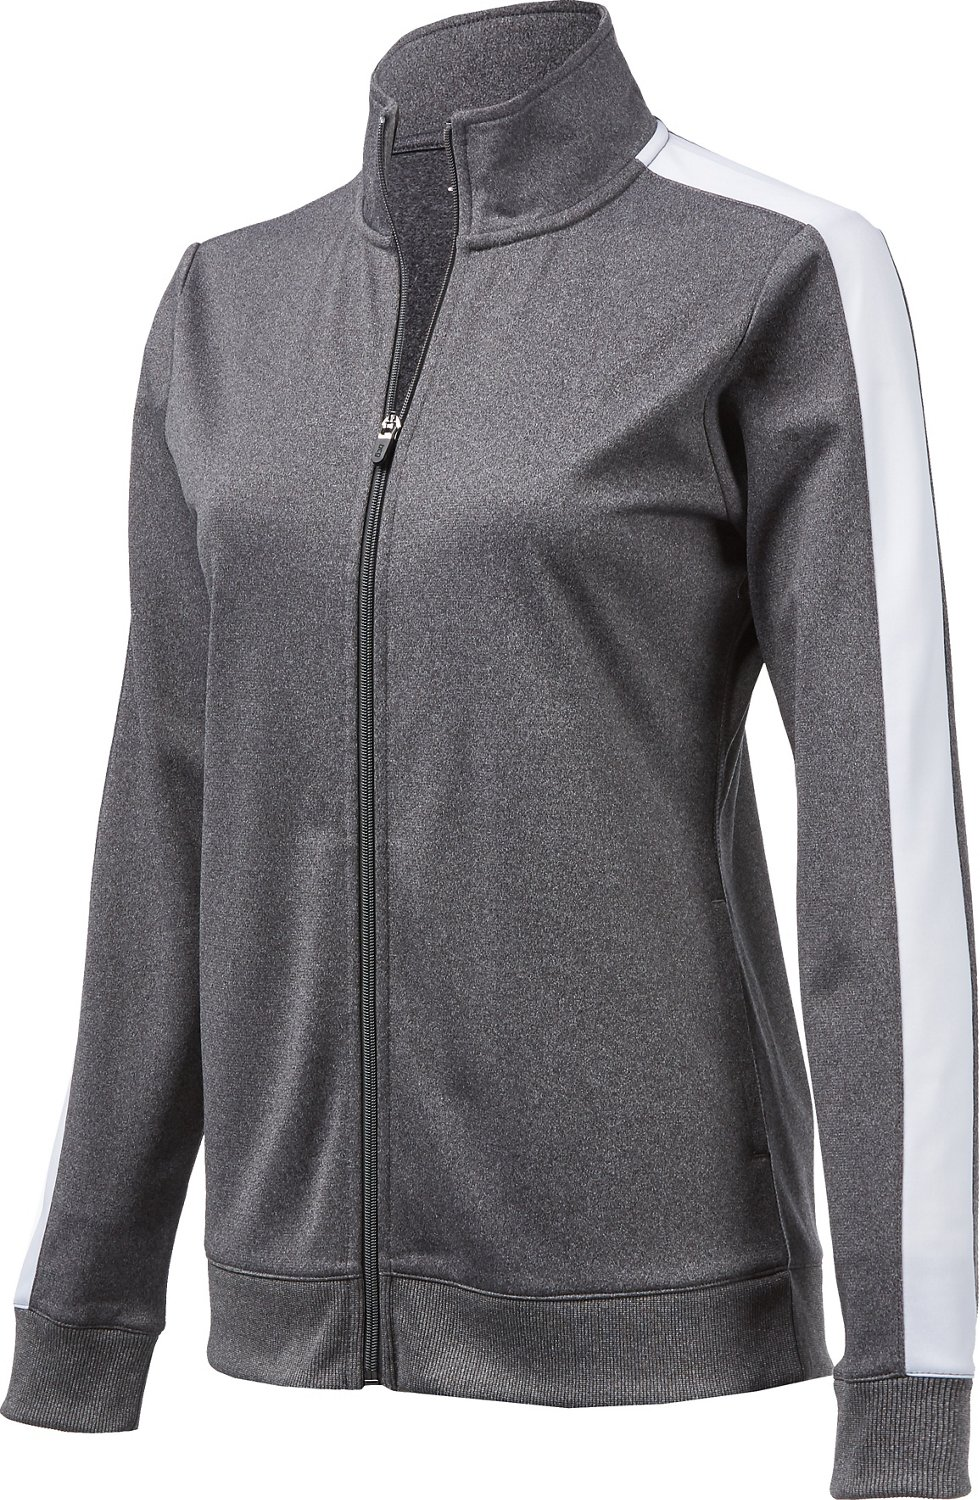 b2f610142 Display product reviews for BCG Women's Tricot Jacket